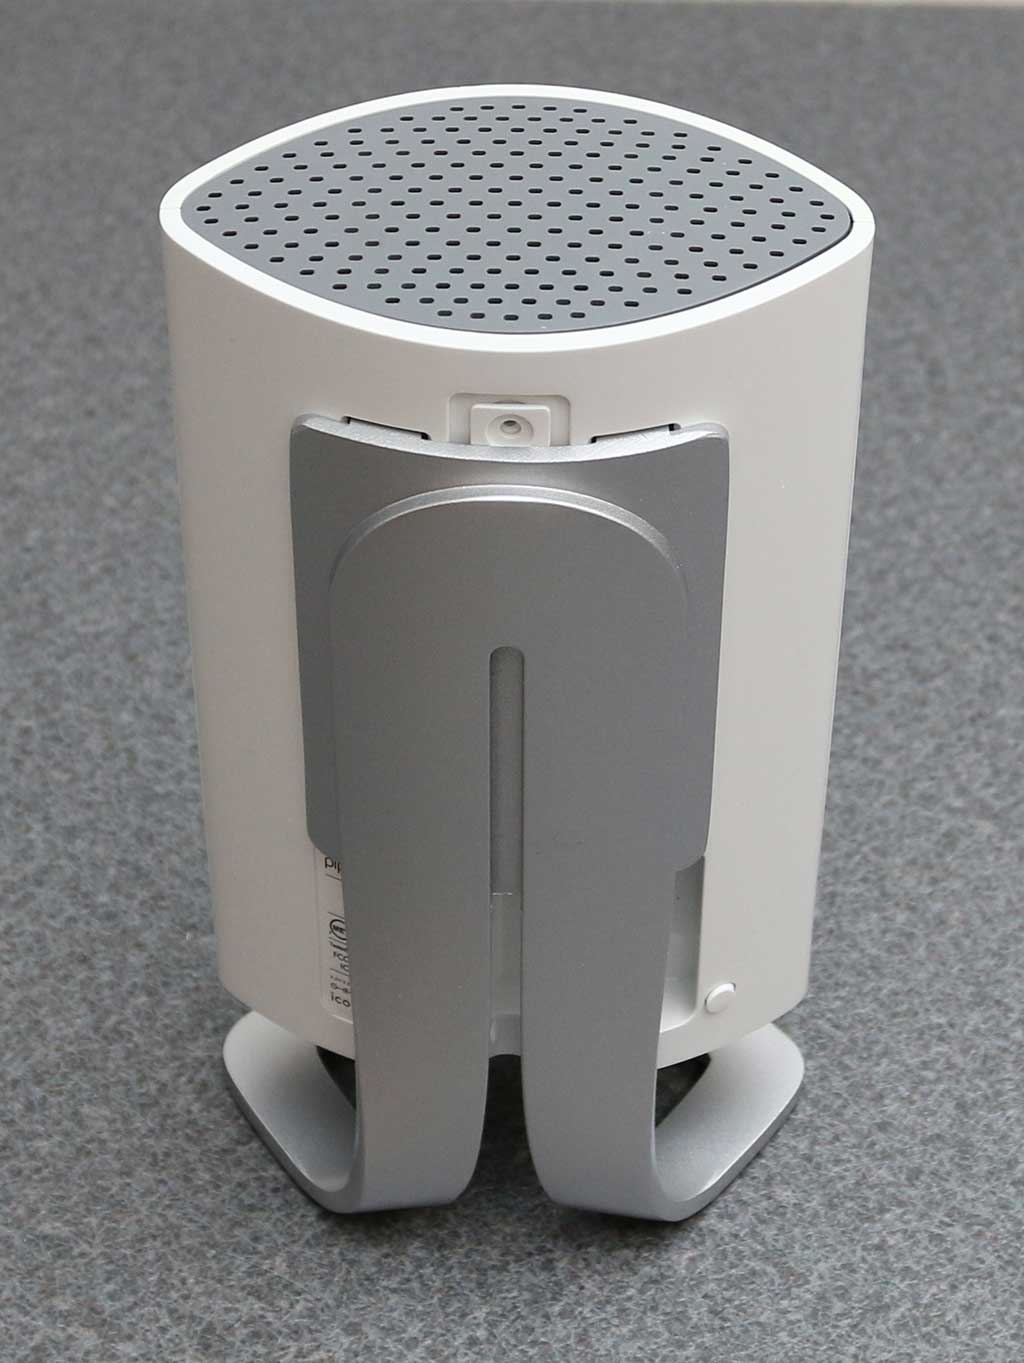 Piper nv security camera review – The Gadgeteer